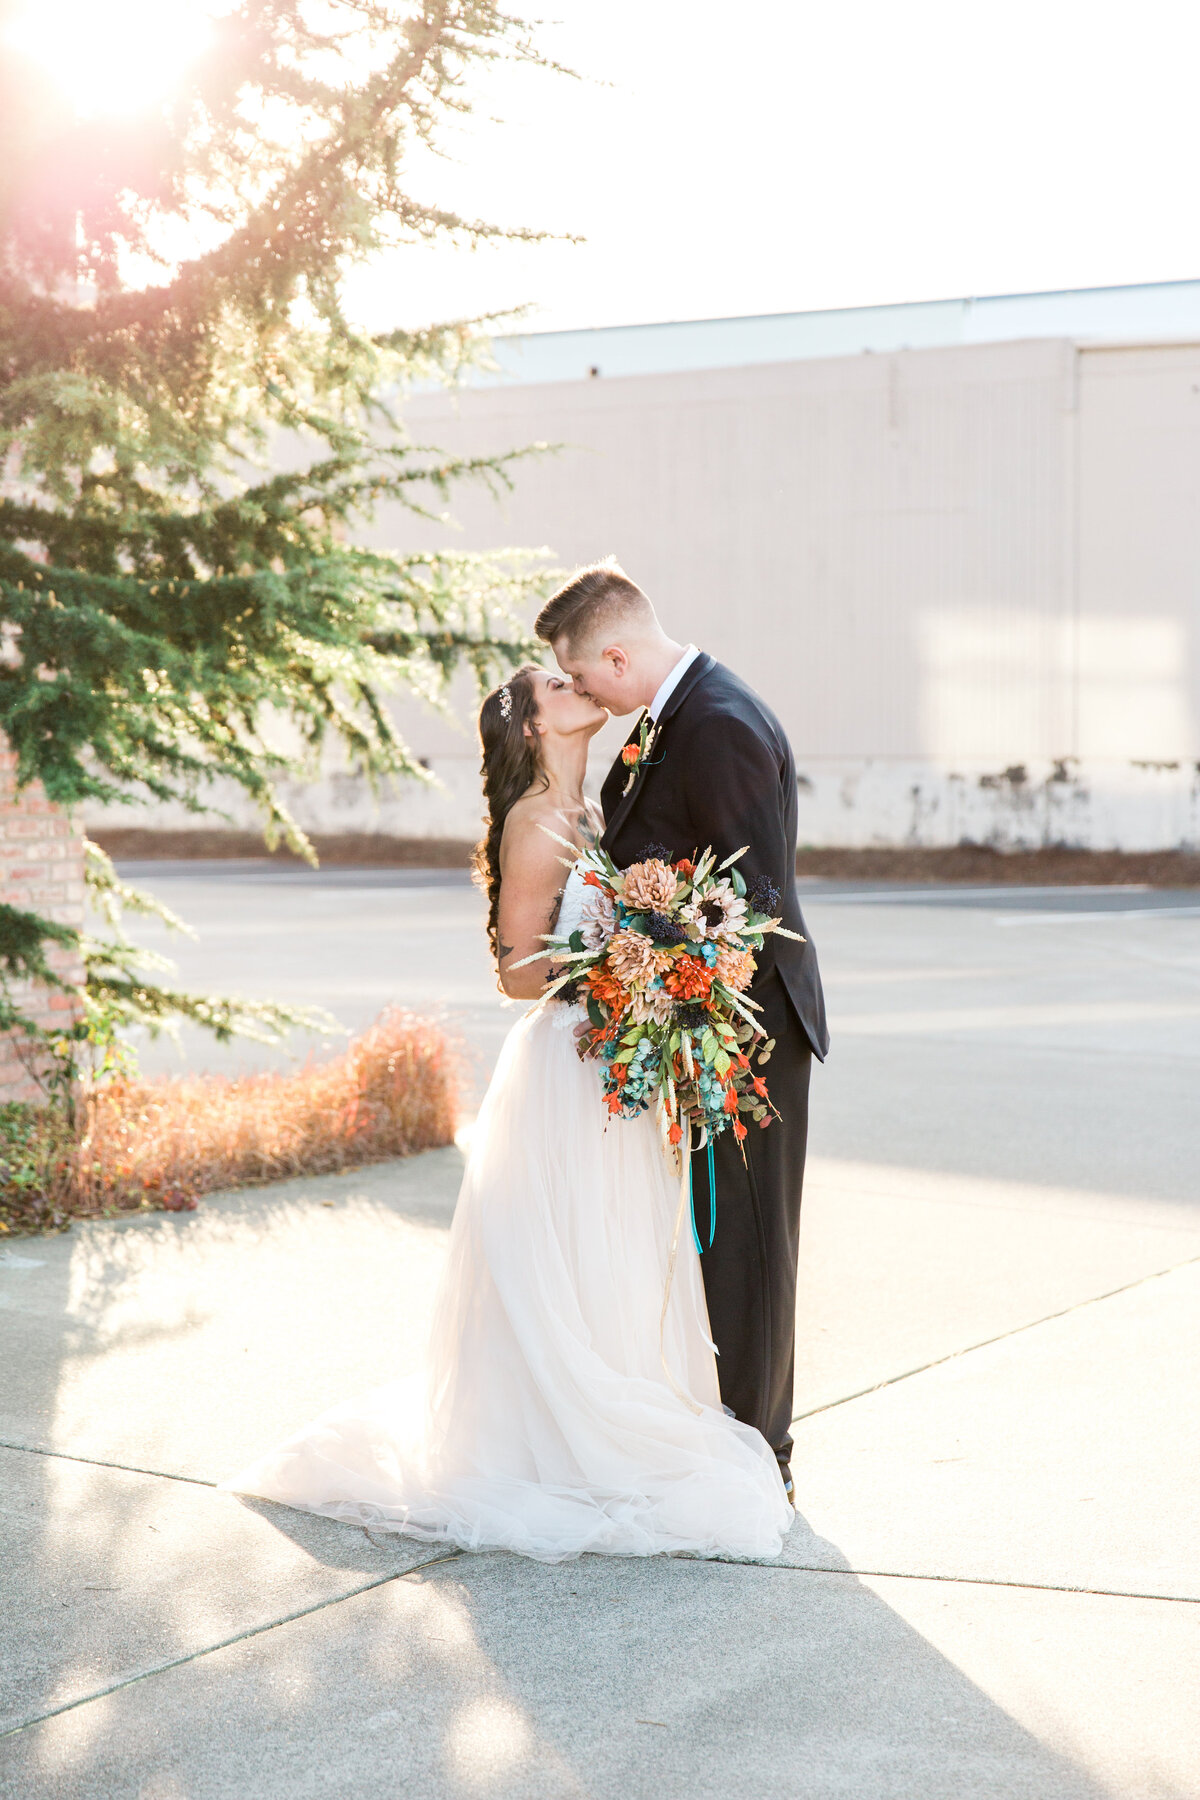 Eden & Me Photography_Destination Wedding Photographer_Seattle_Minneapolis_26